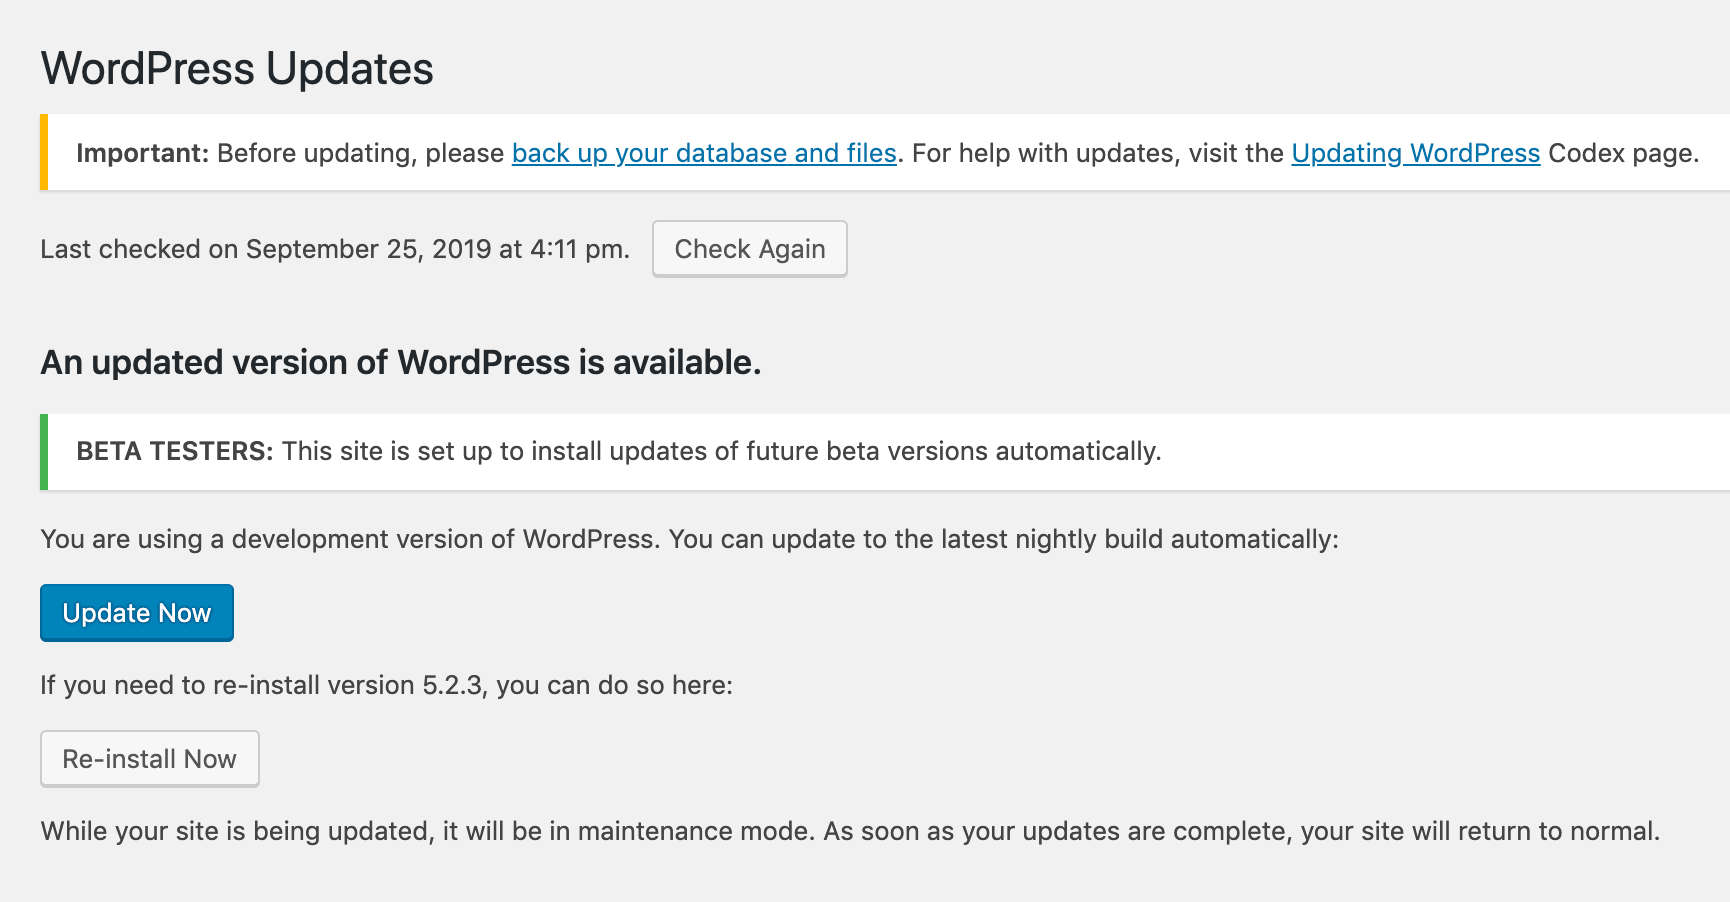 WordPress Updates screen